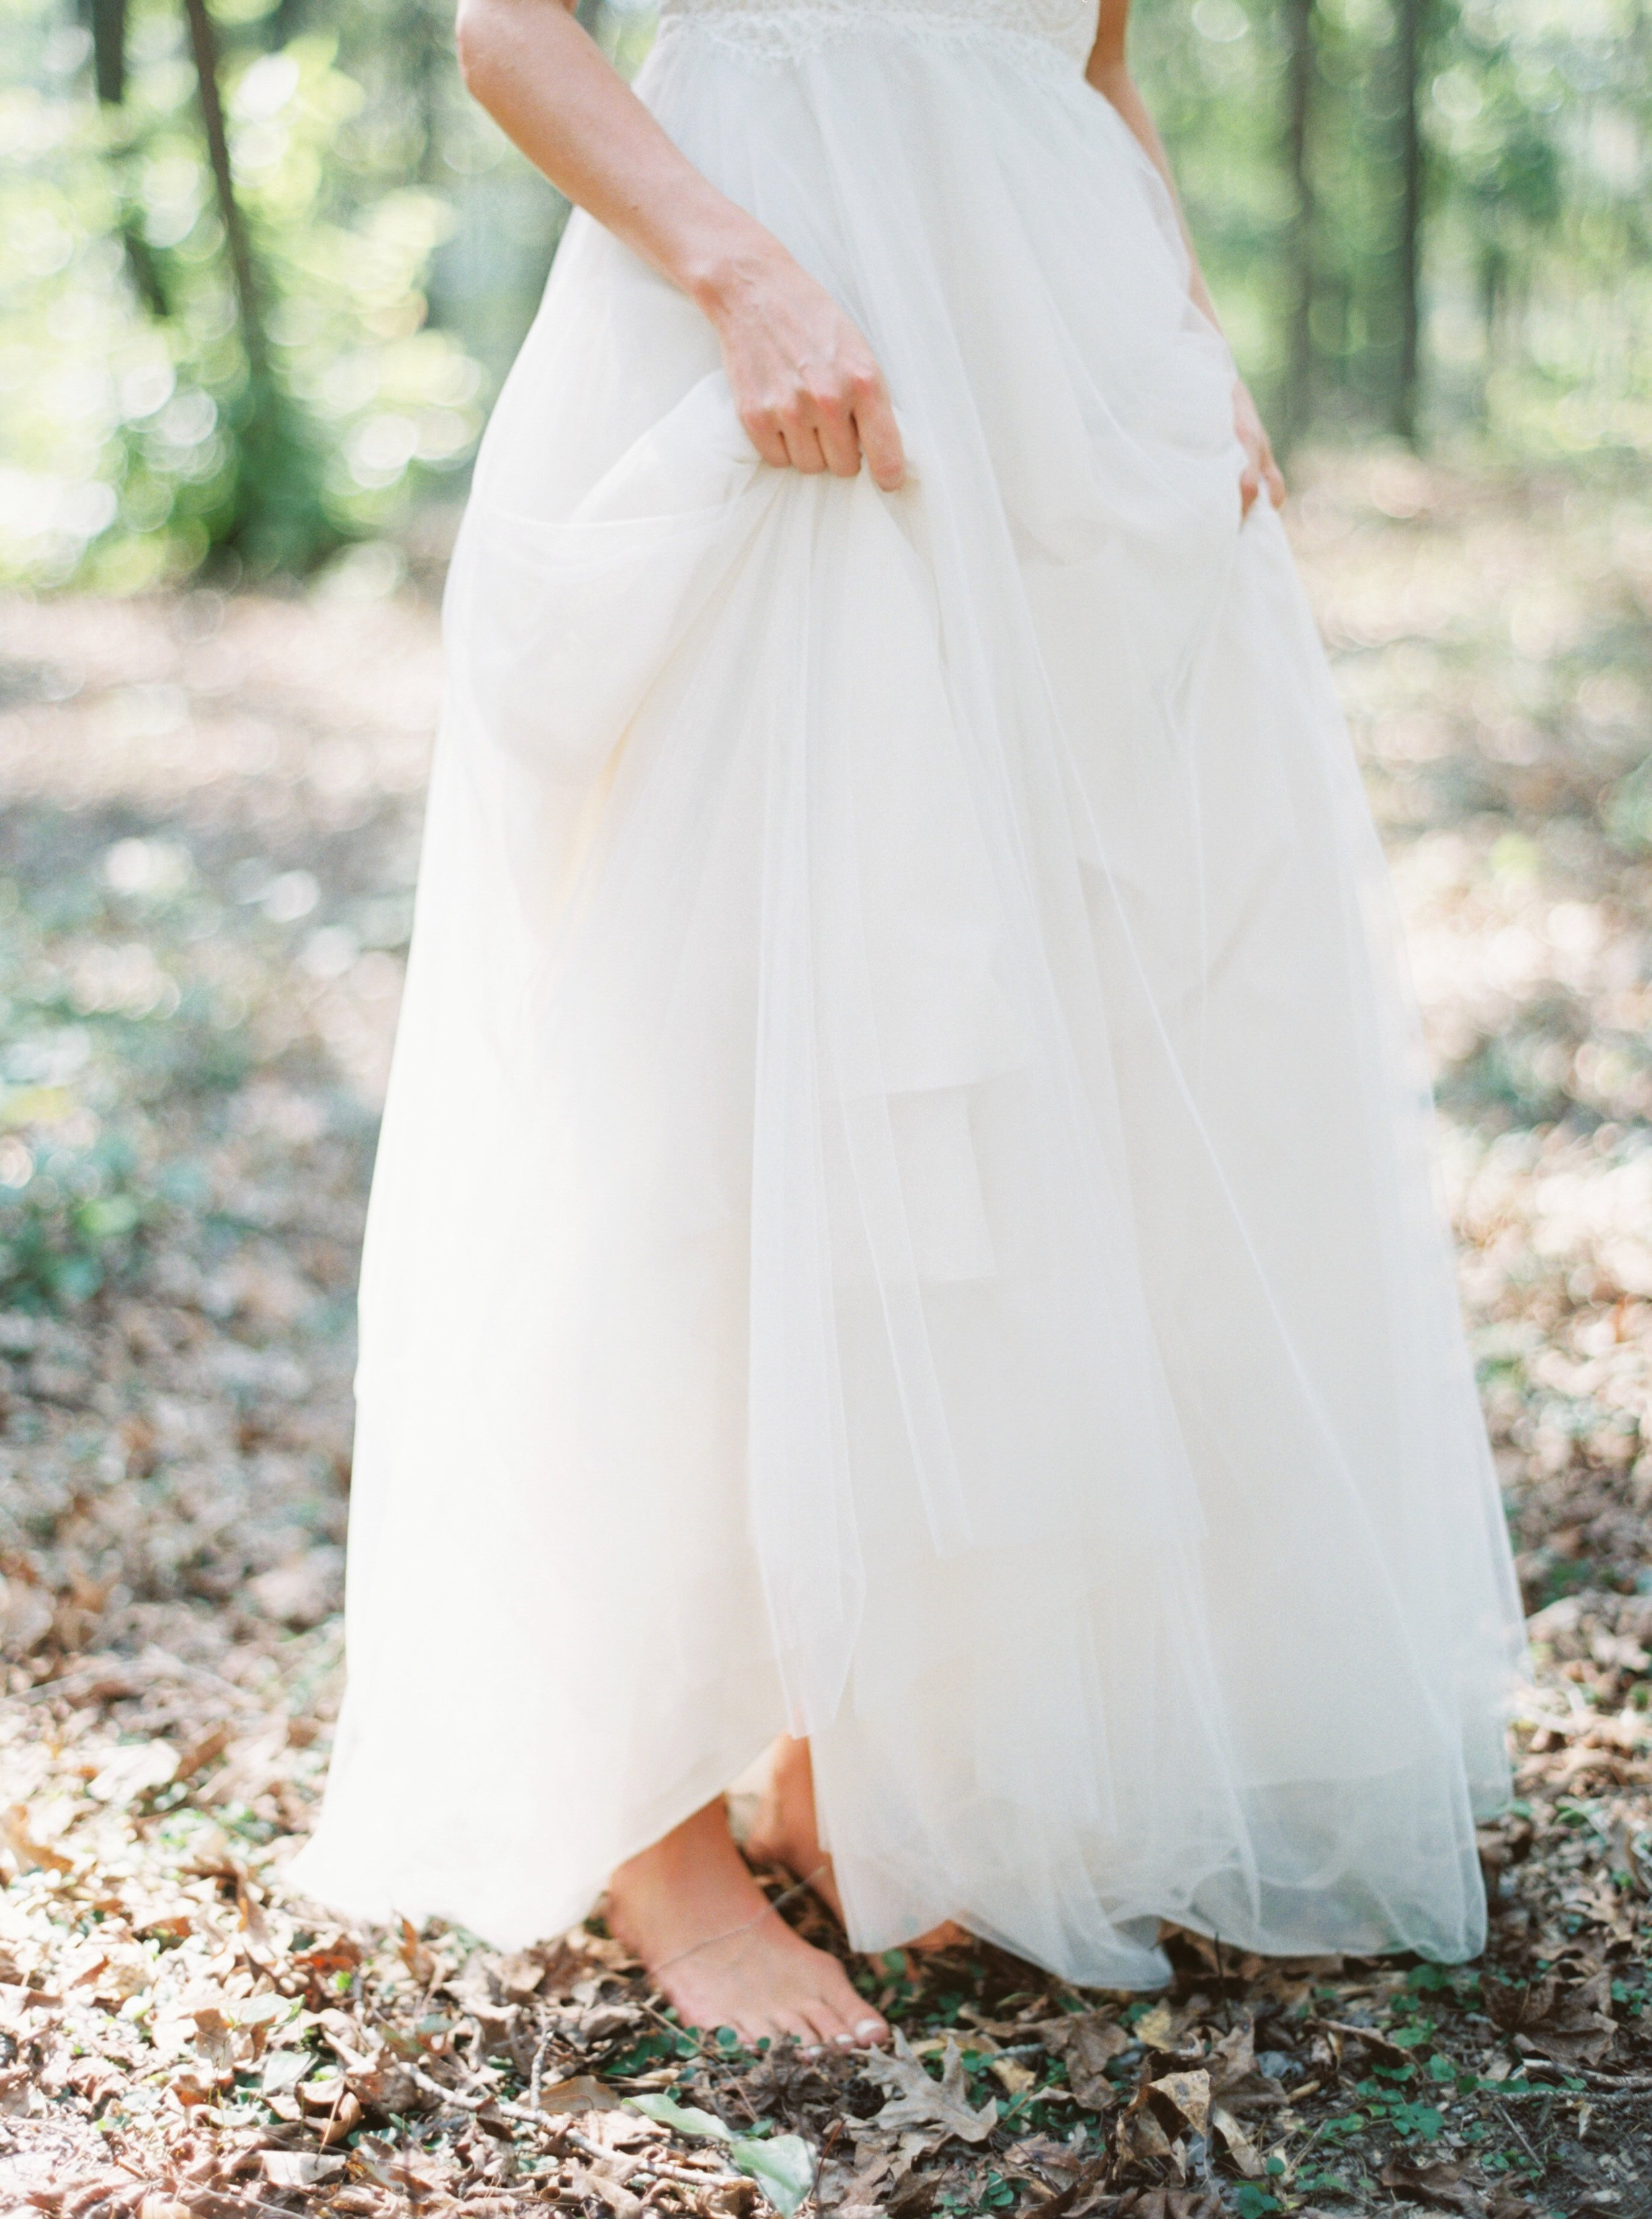 backyard wedding, magnolia rouge wedding, BHLDN dress, barefoot bride, alabama wedding photographer, birmingham wedding photographer, fine art wedding photographer, film wedding photographer, meghan murphy photography,